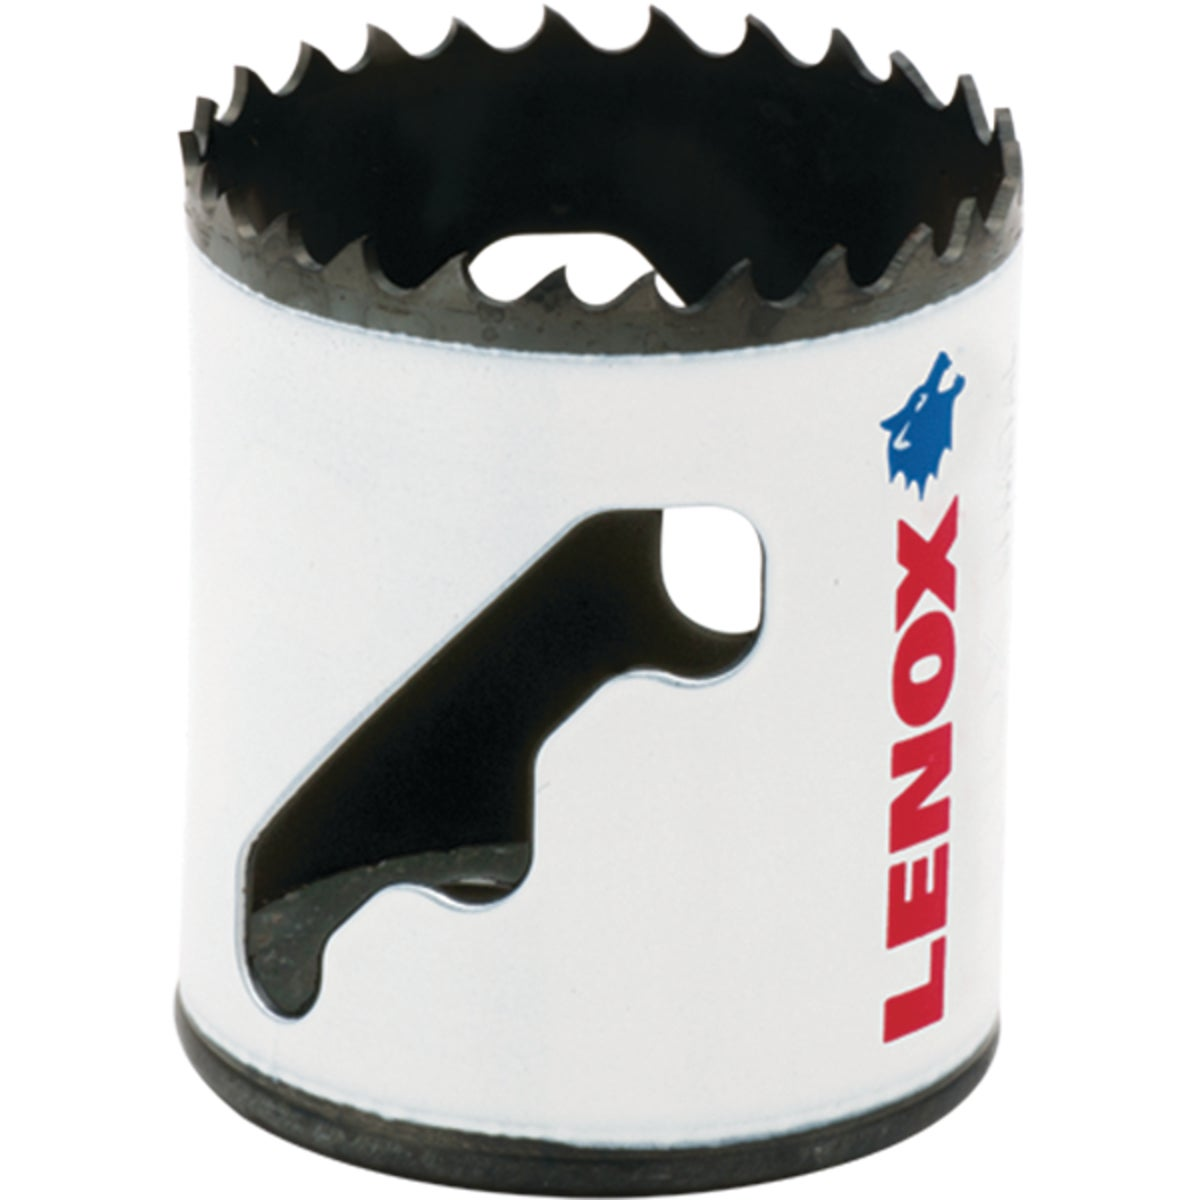 "1-3/4"" HOLE SAW - 1771967 by Lenox"